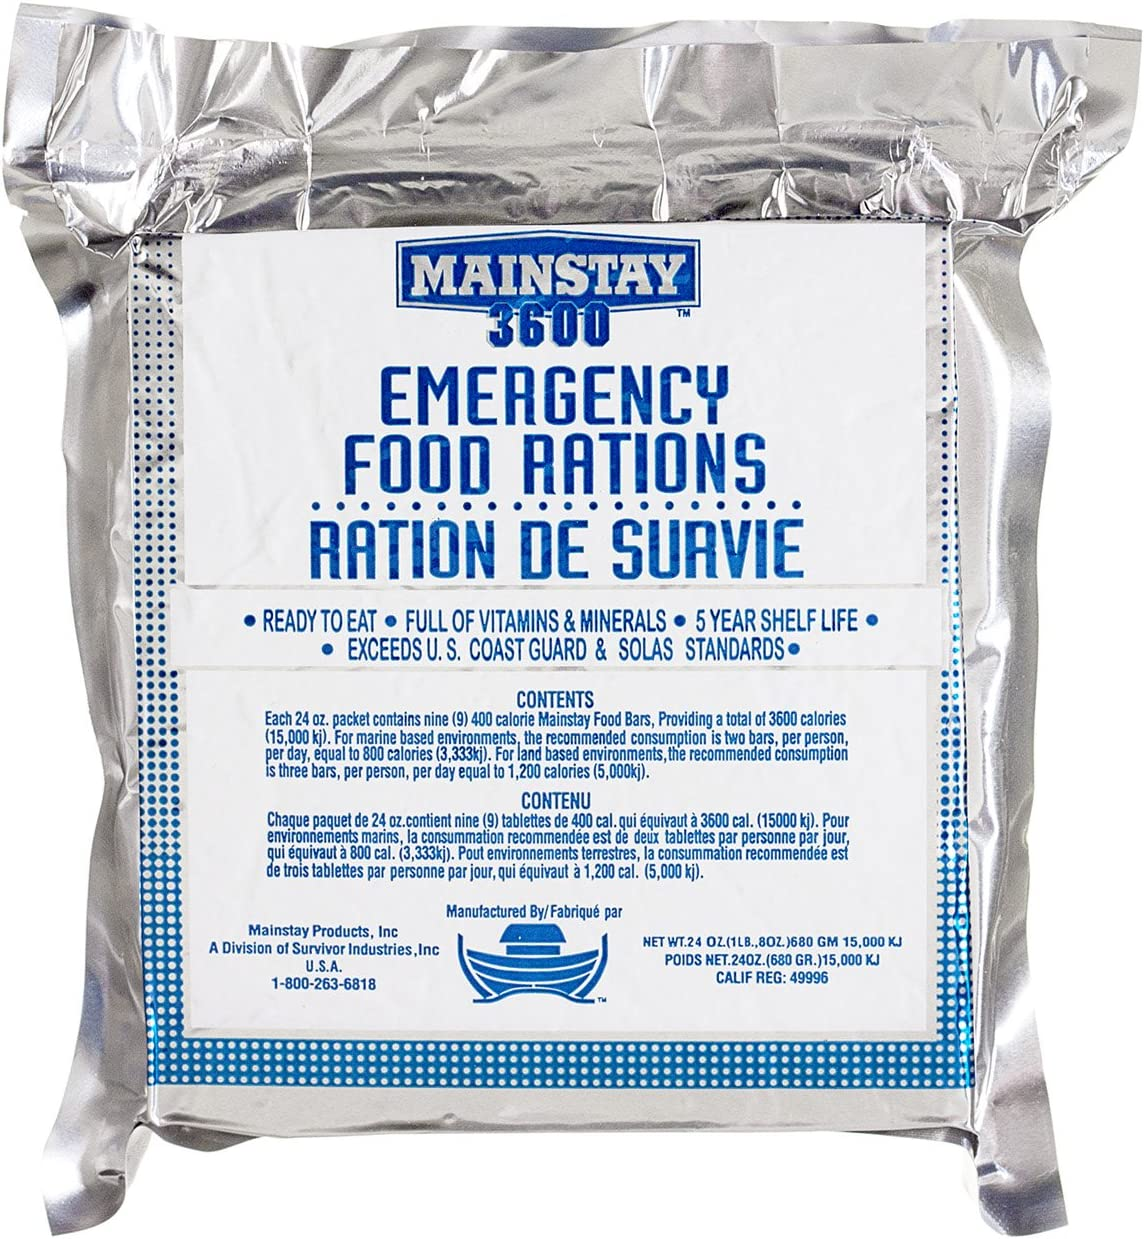 Mainstay Emergency Food Rations - 3600 Calorie Bars (Pack of 20)